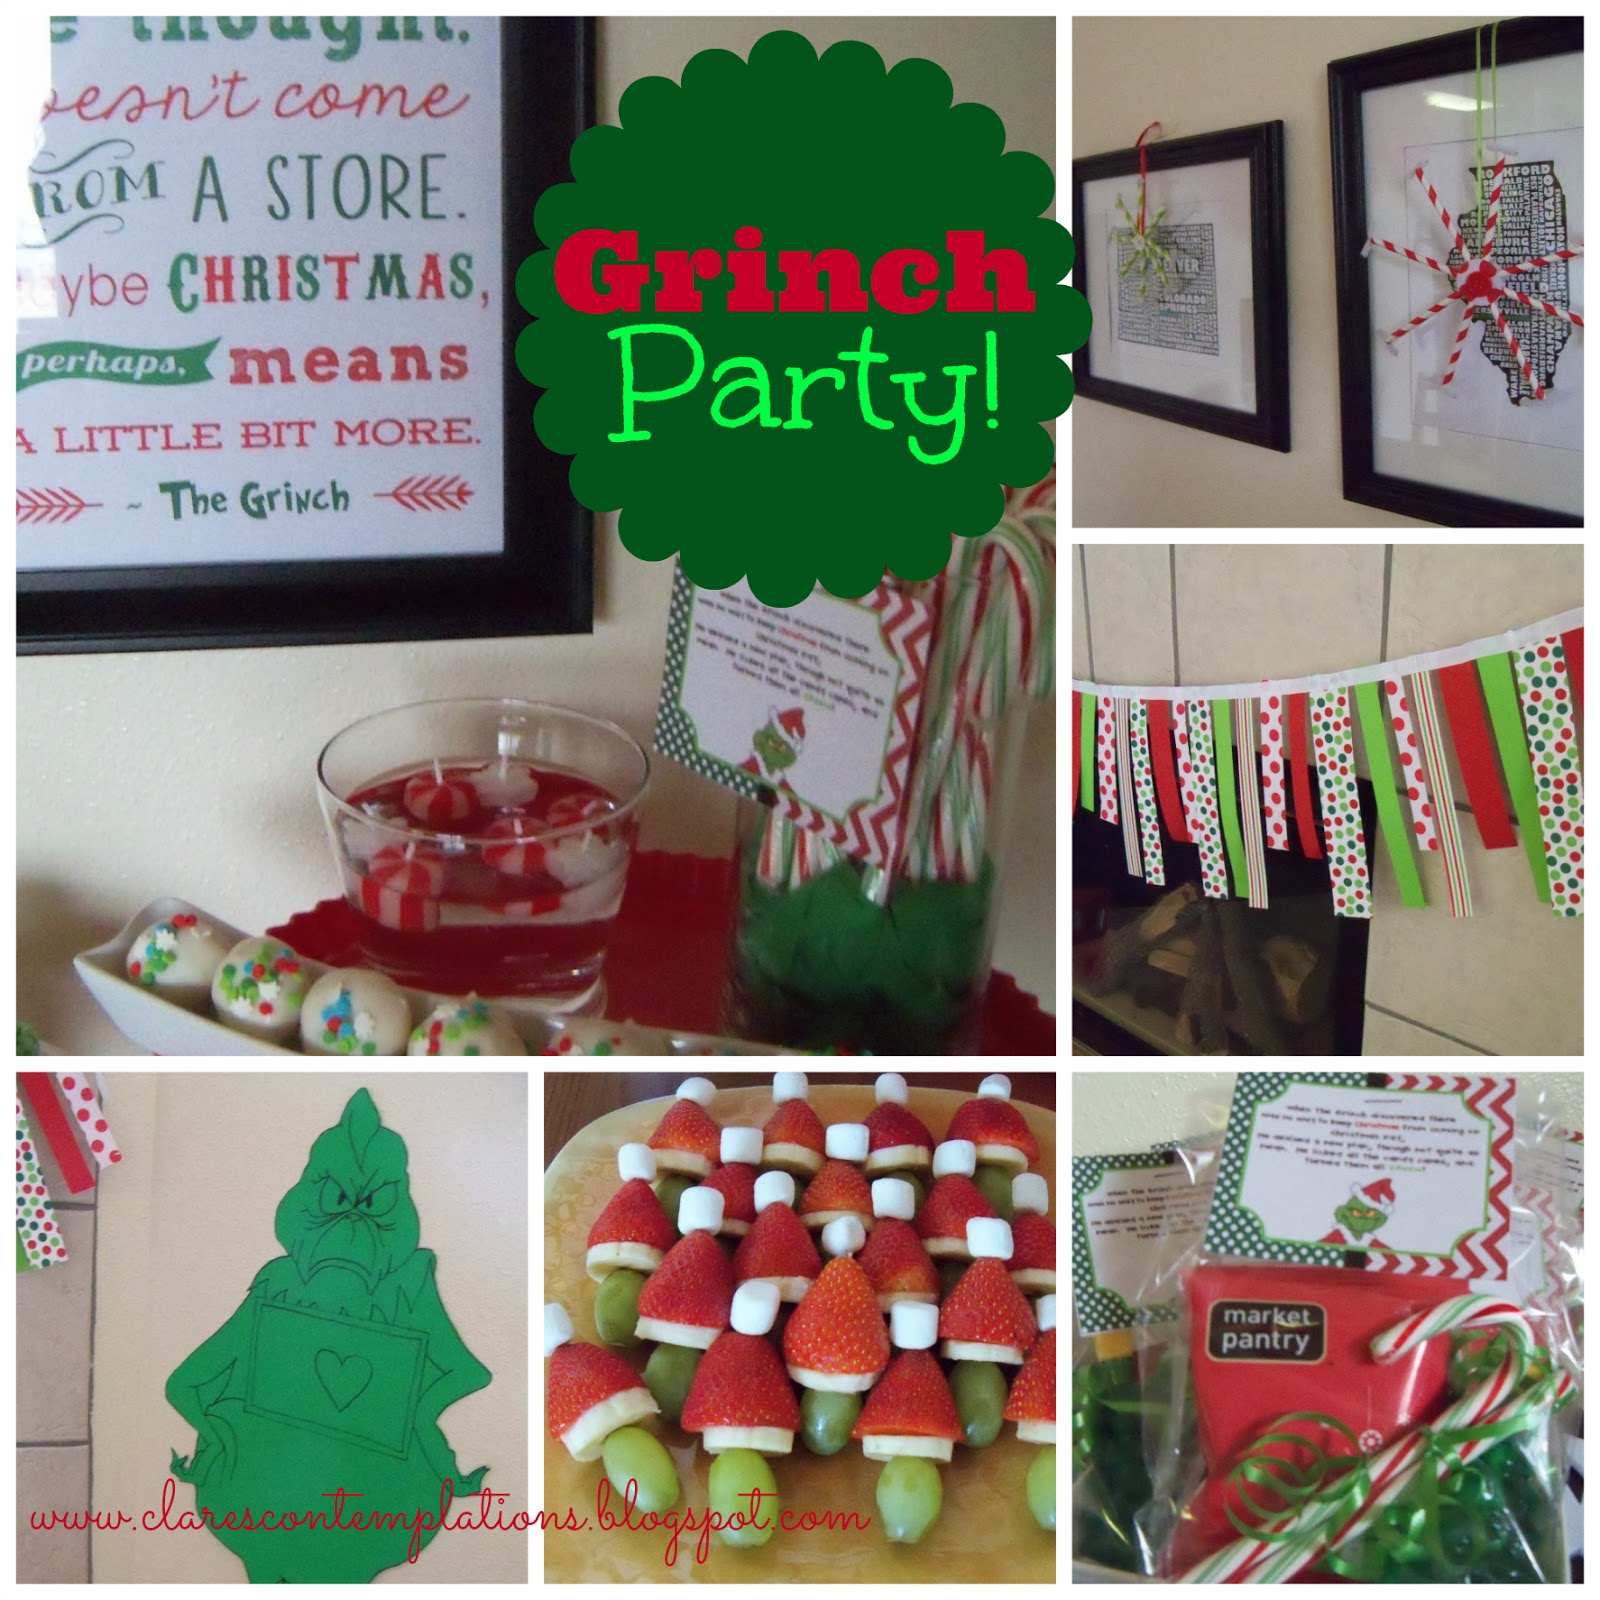 How To Make A Christmas Party Fun: Clare's Contemplations: Great Grinch Party